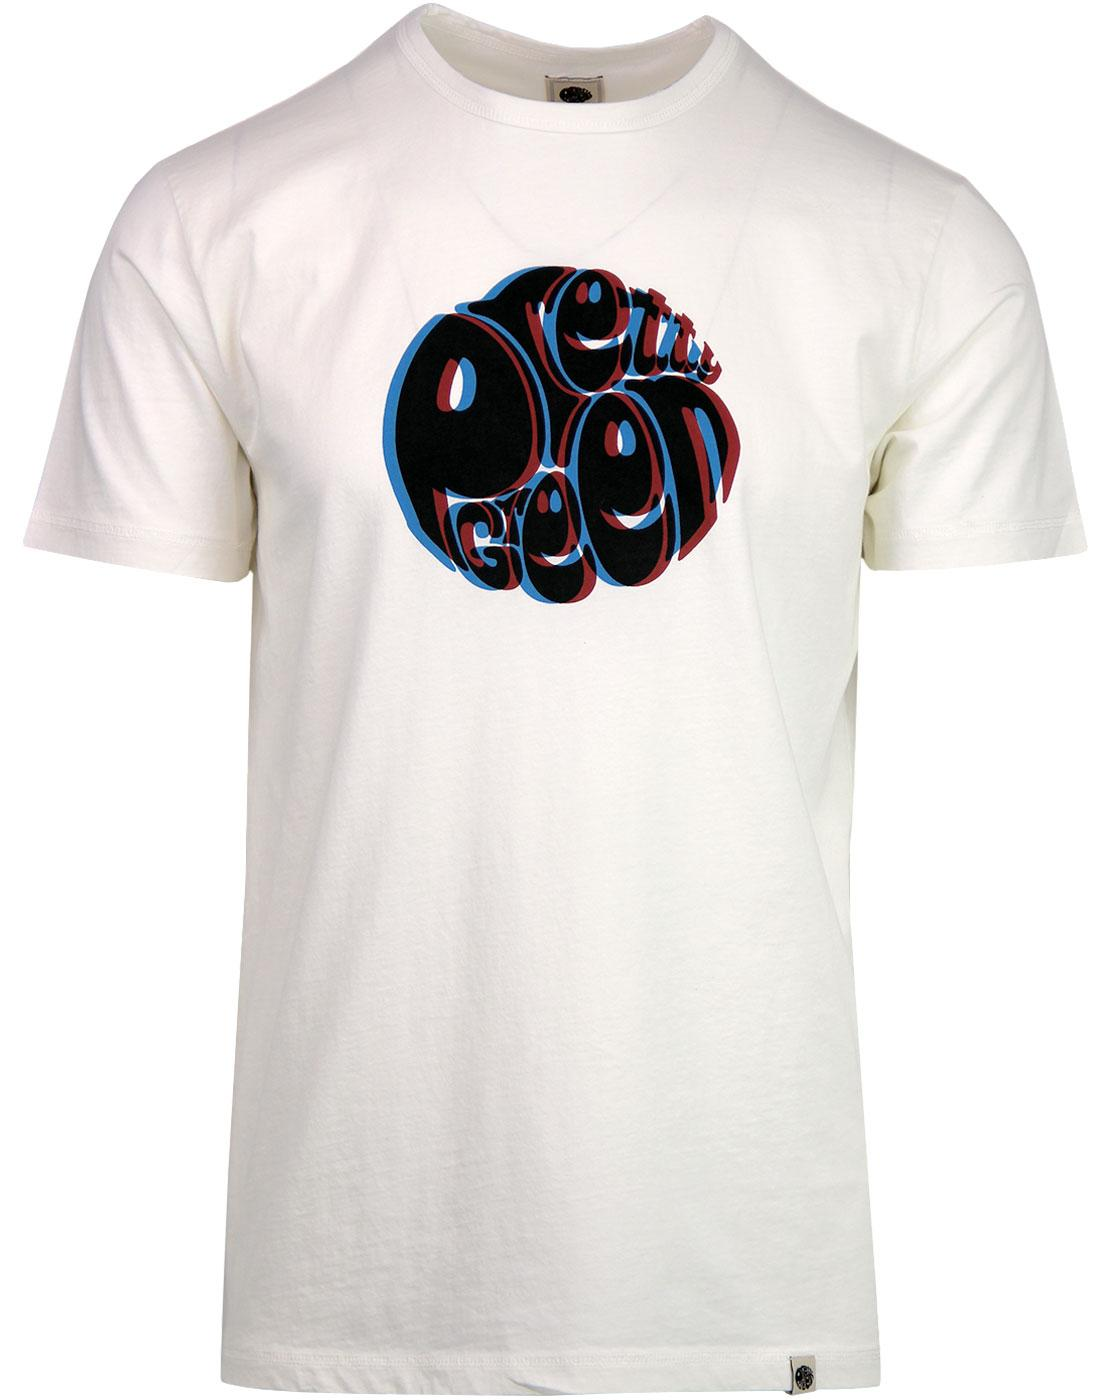 PRETTY GREEN Retro 3D Signature Logo Tee - White